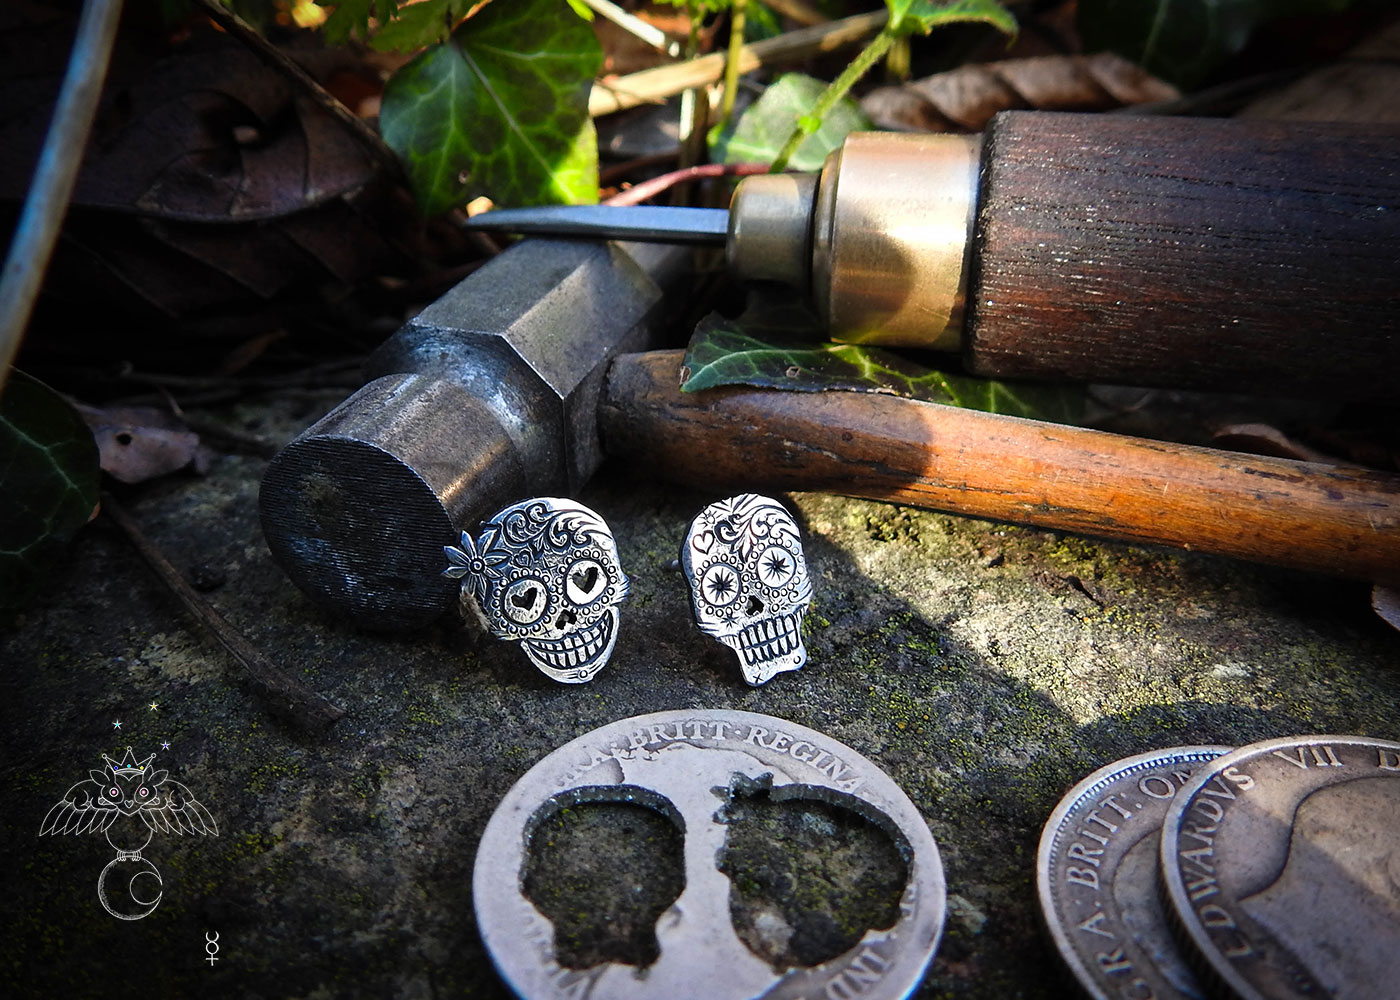 Day of the dead skull earrings - handmade and recycled sterling silver shilling coin.